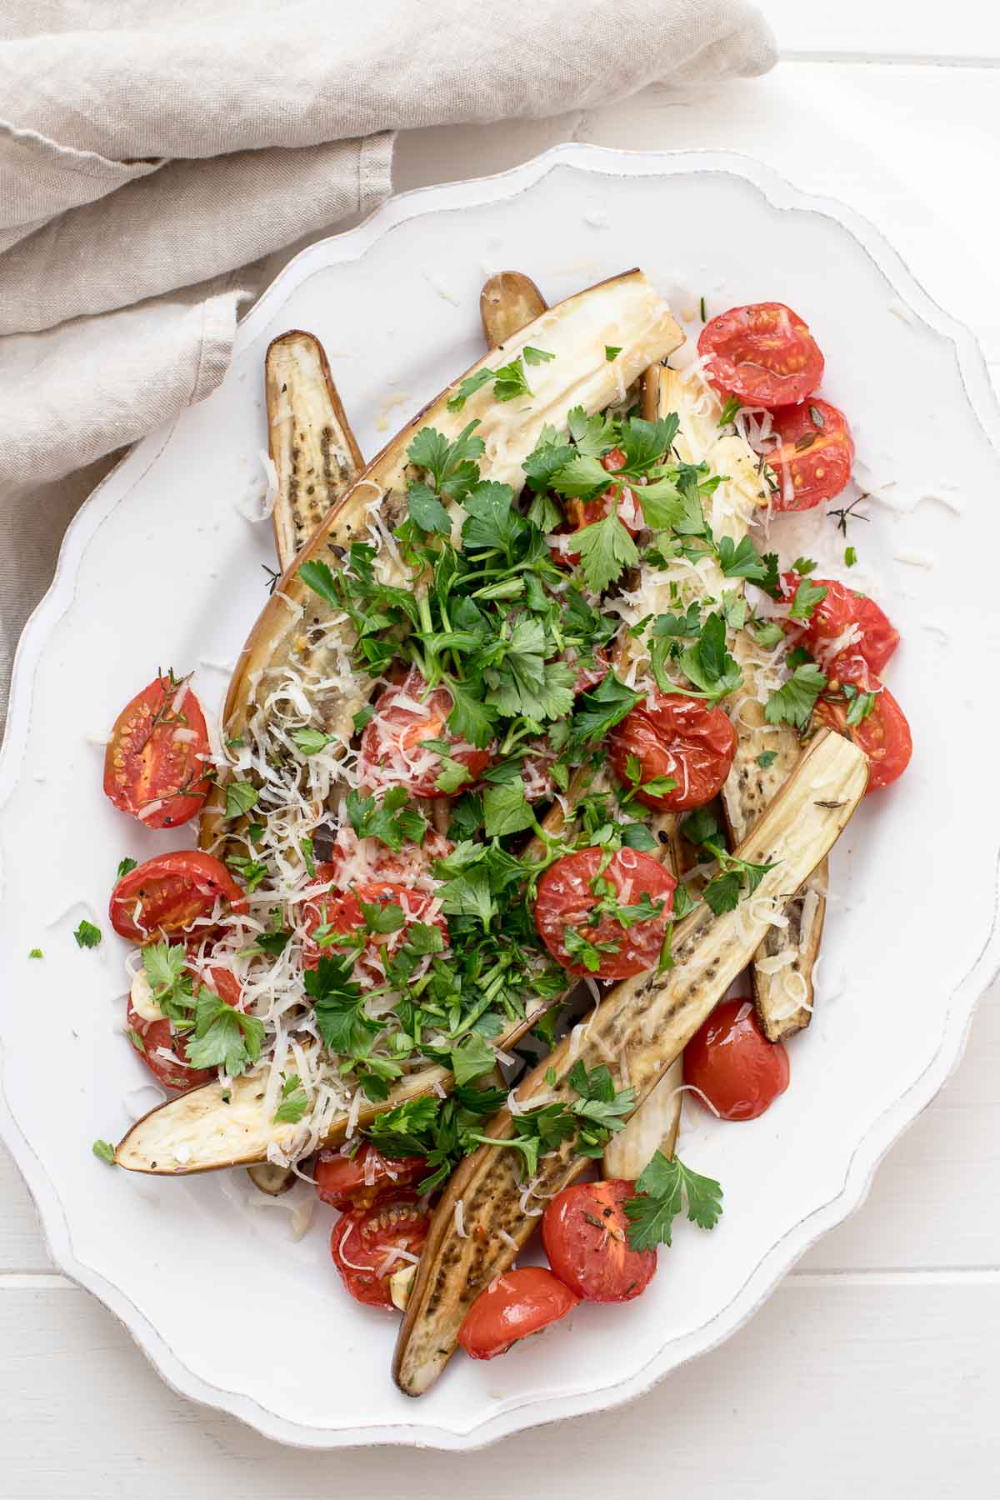 Roasted Sicilian Eggplant & Cherry Tomatoes with Basil